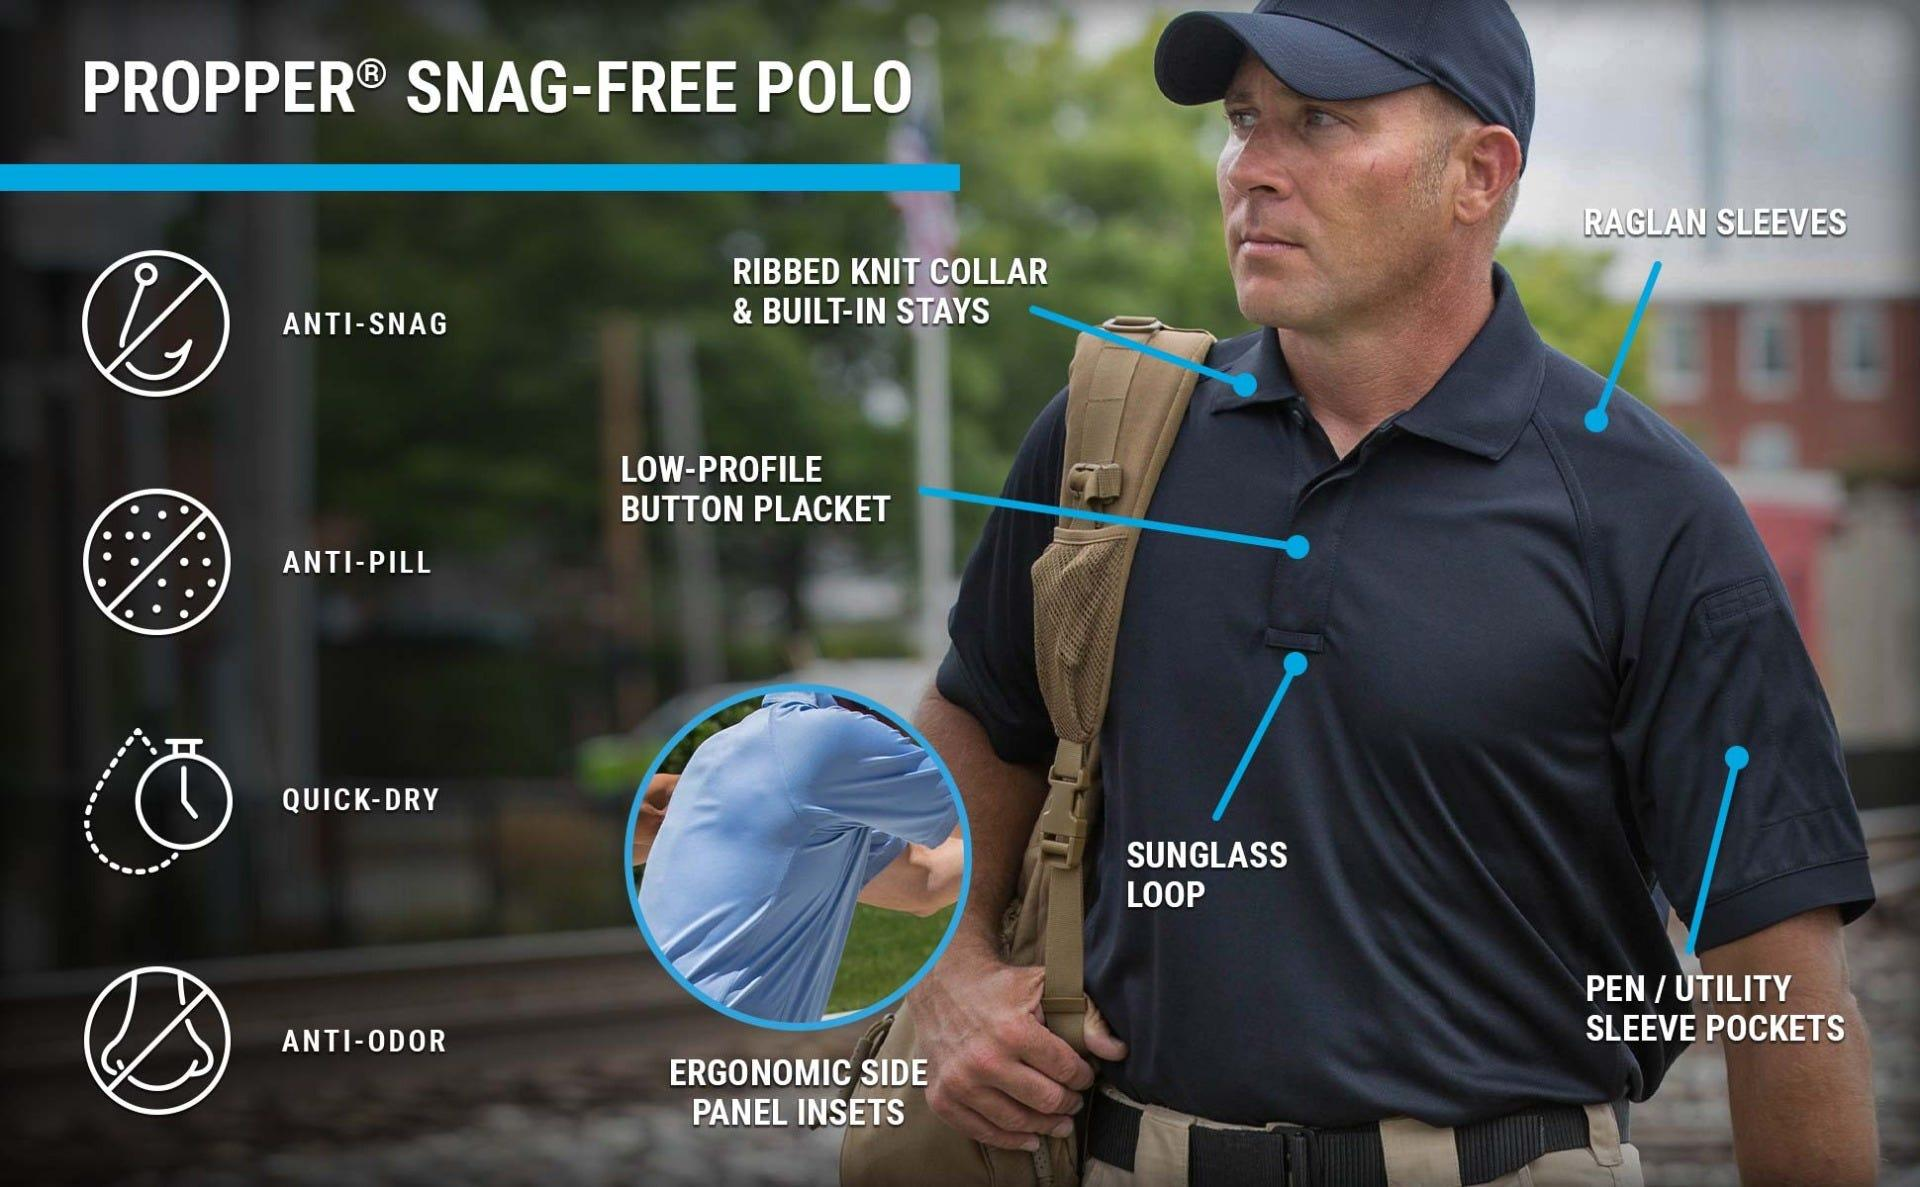 The low profile button placket, raglan sleeves and inset side panels featured on the Snag Free polo on man holding backpack.